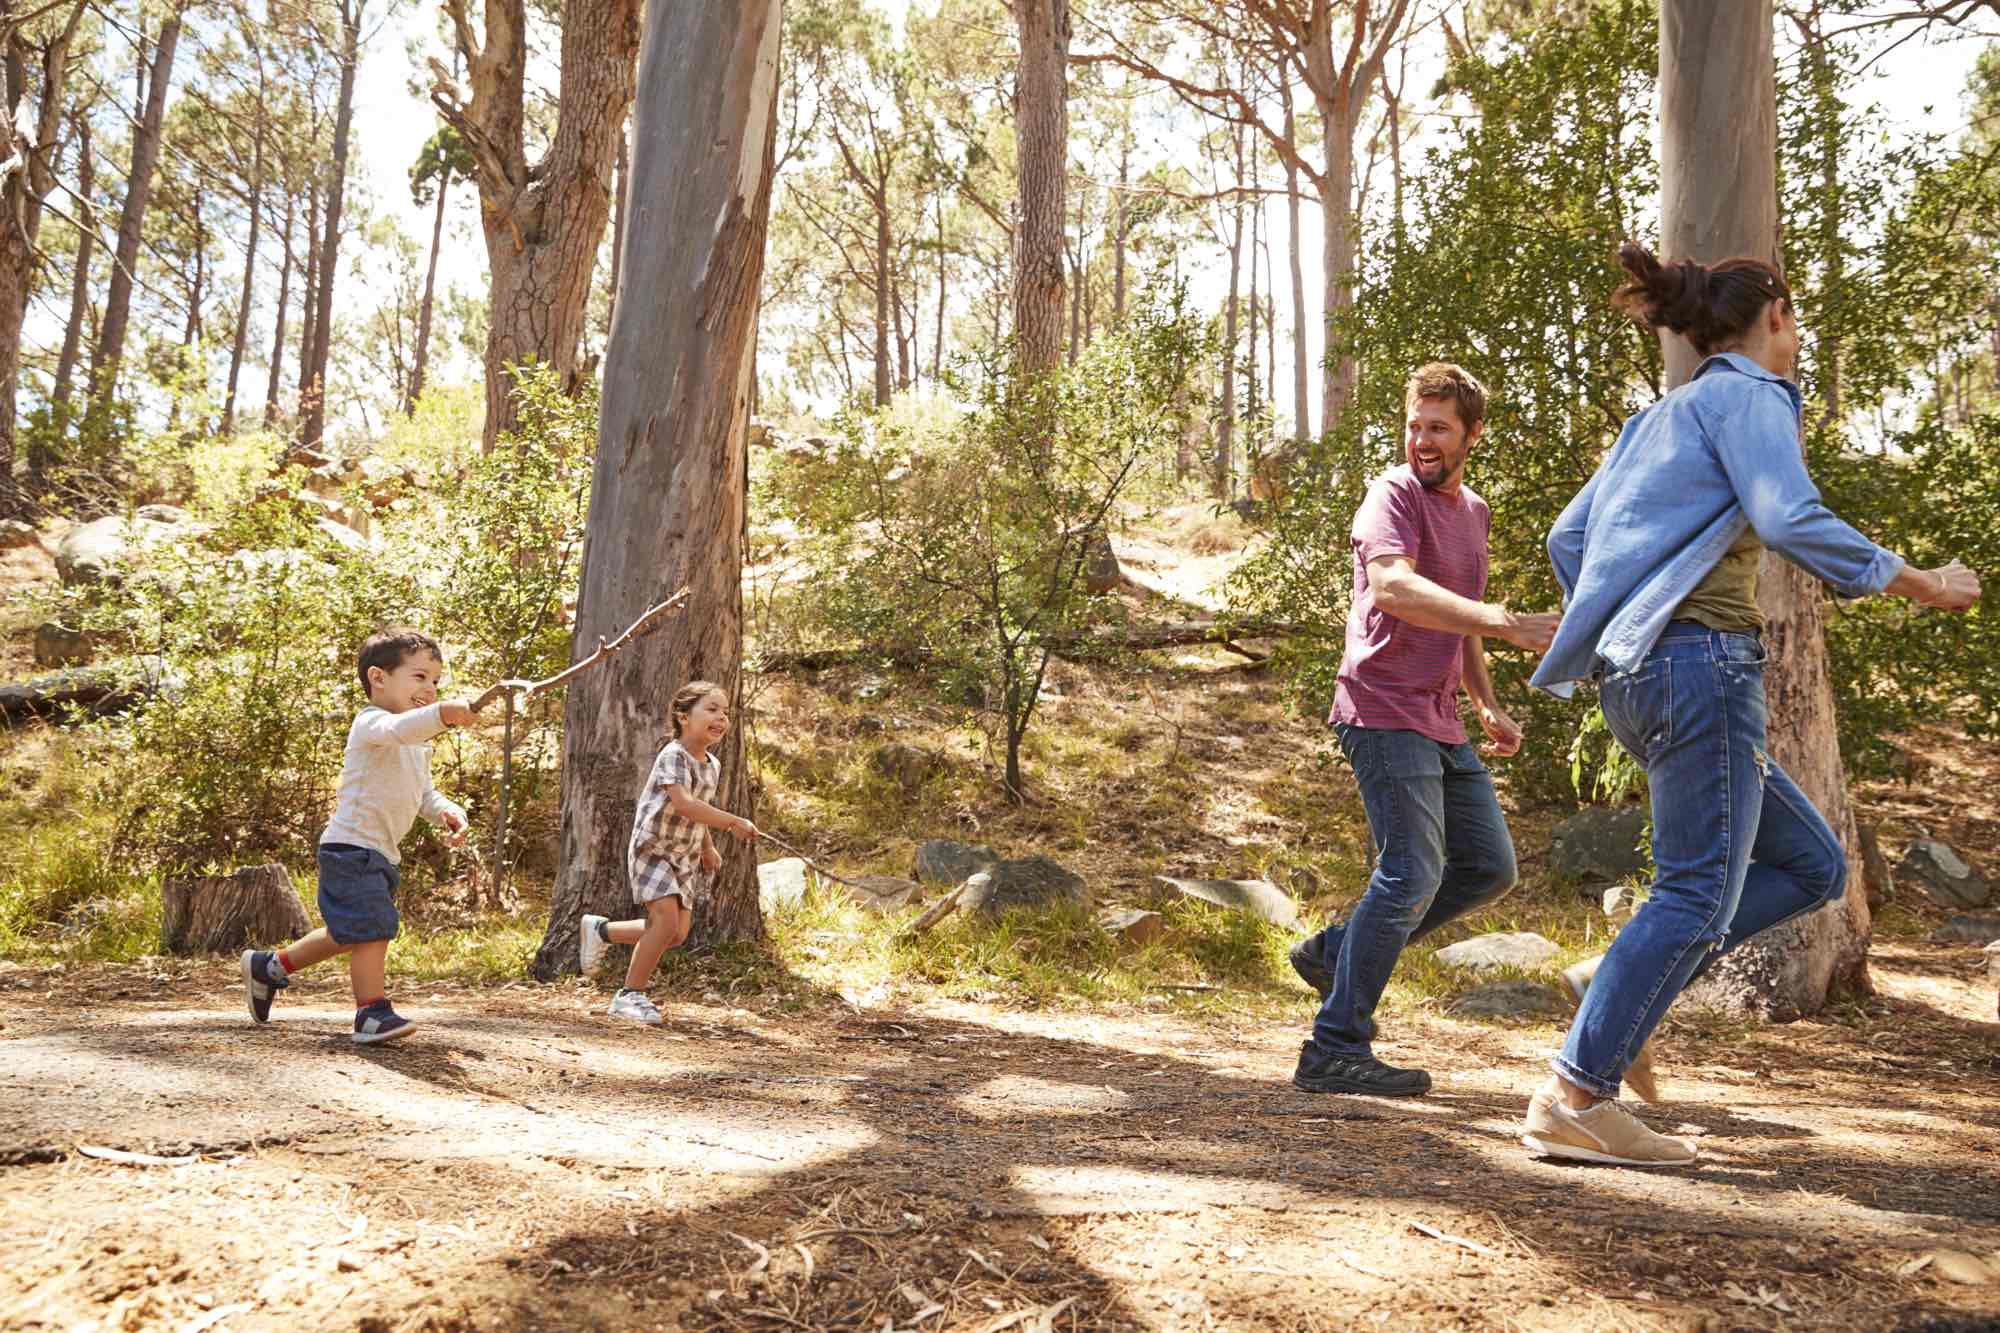 family-running-along-path-through-forest-together-PYZF87D